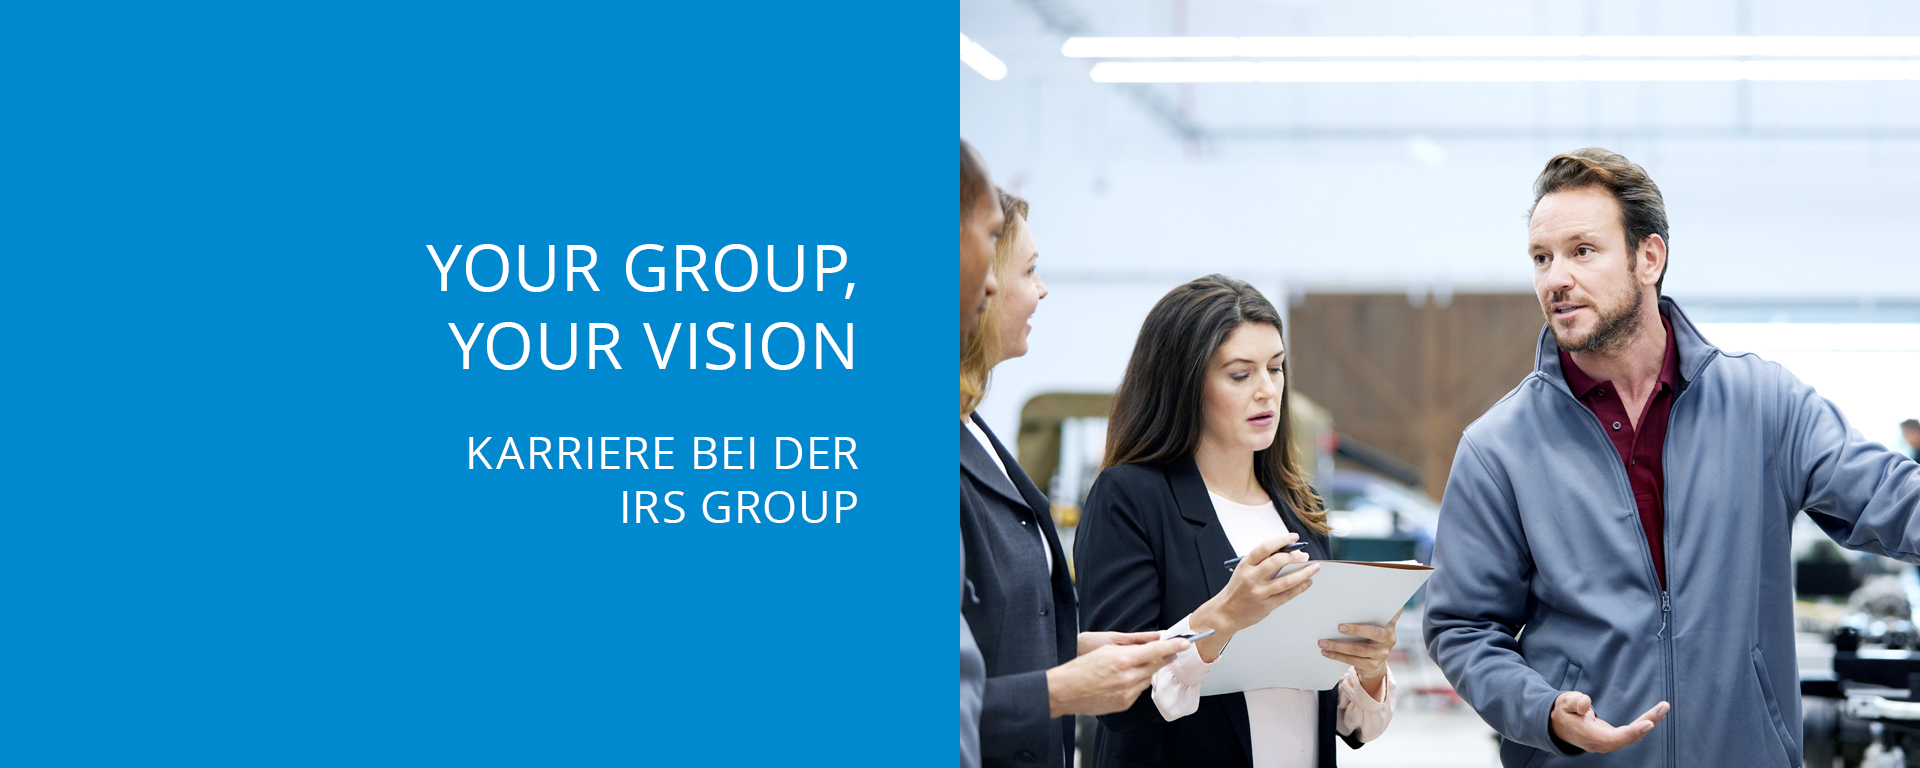 Your Group, your vision - Karriere bei der IRS Group